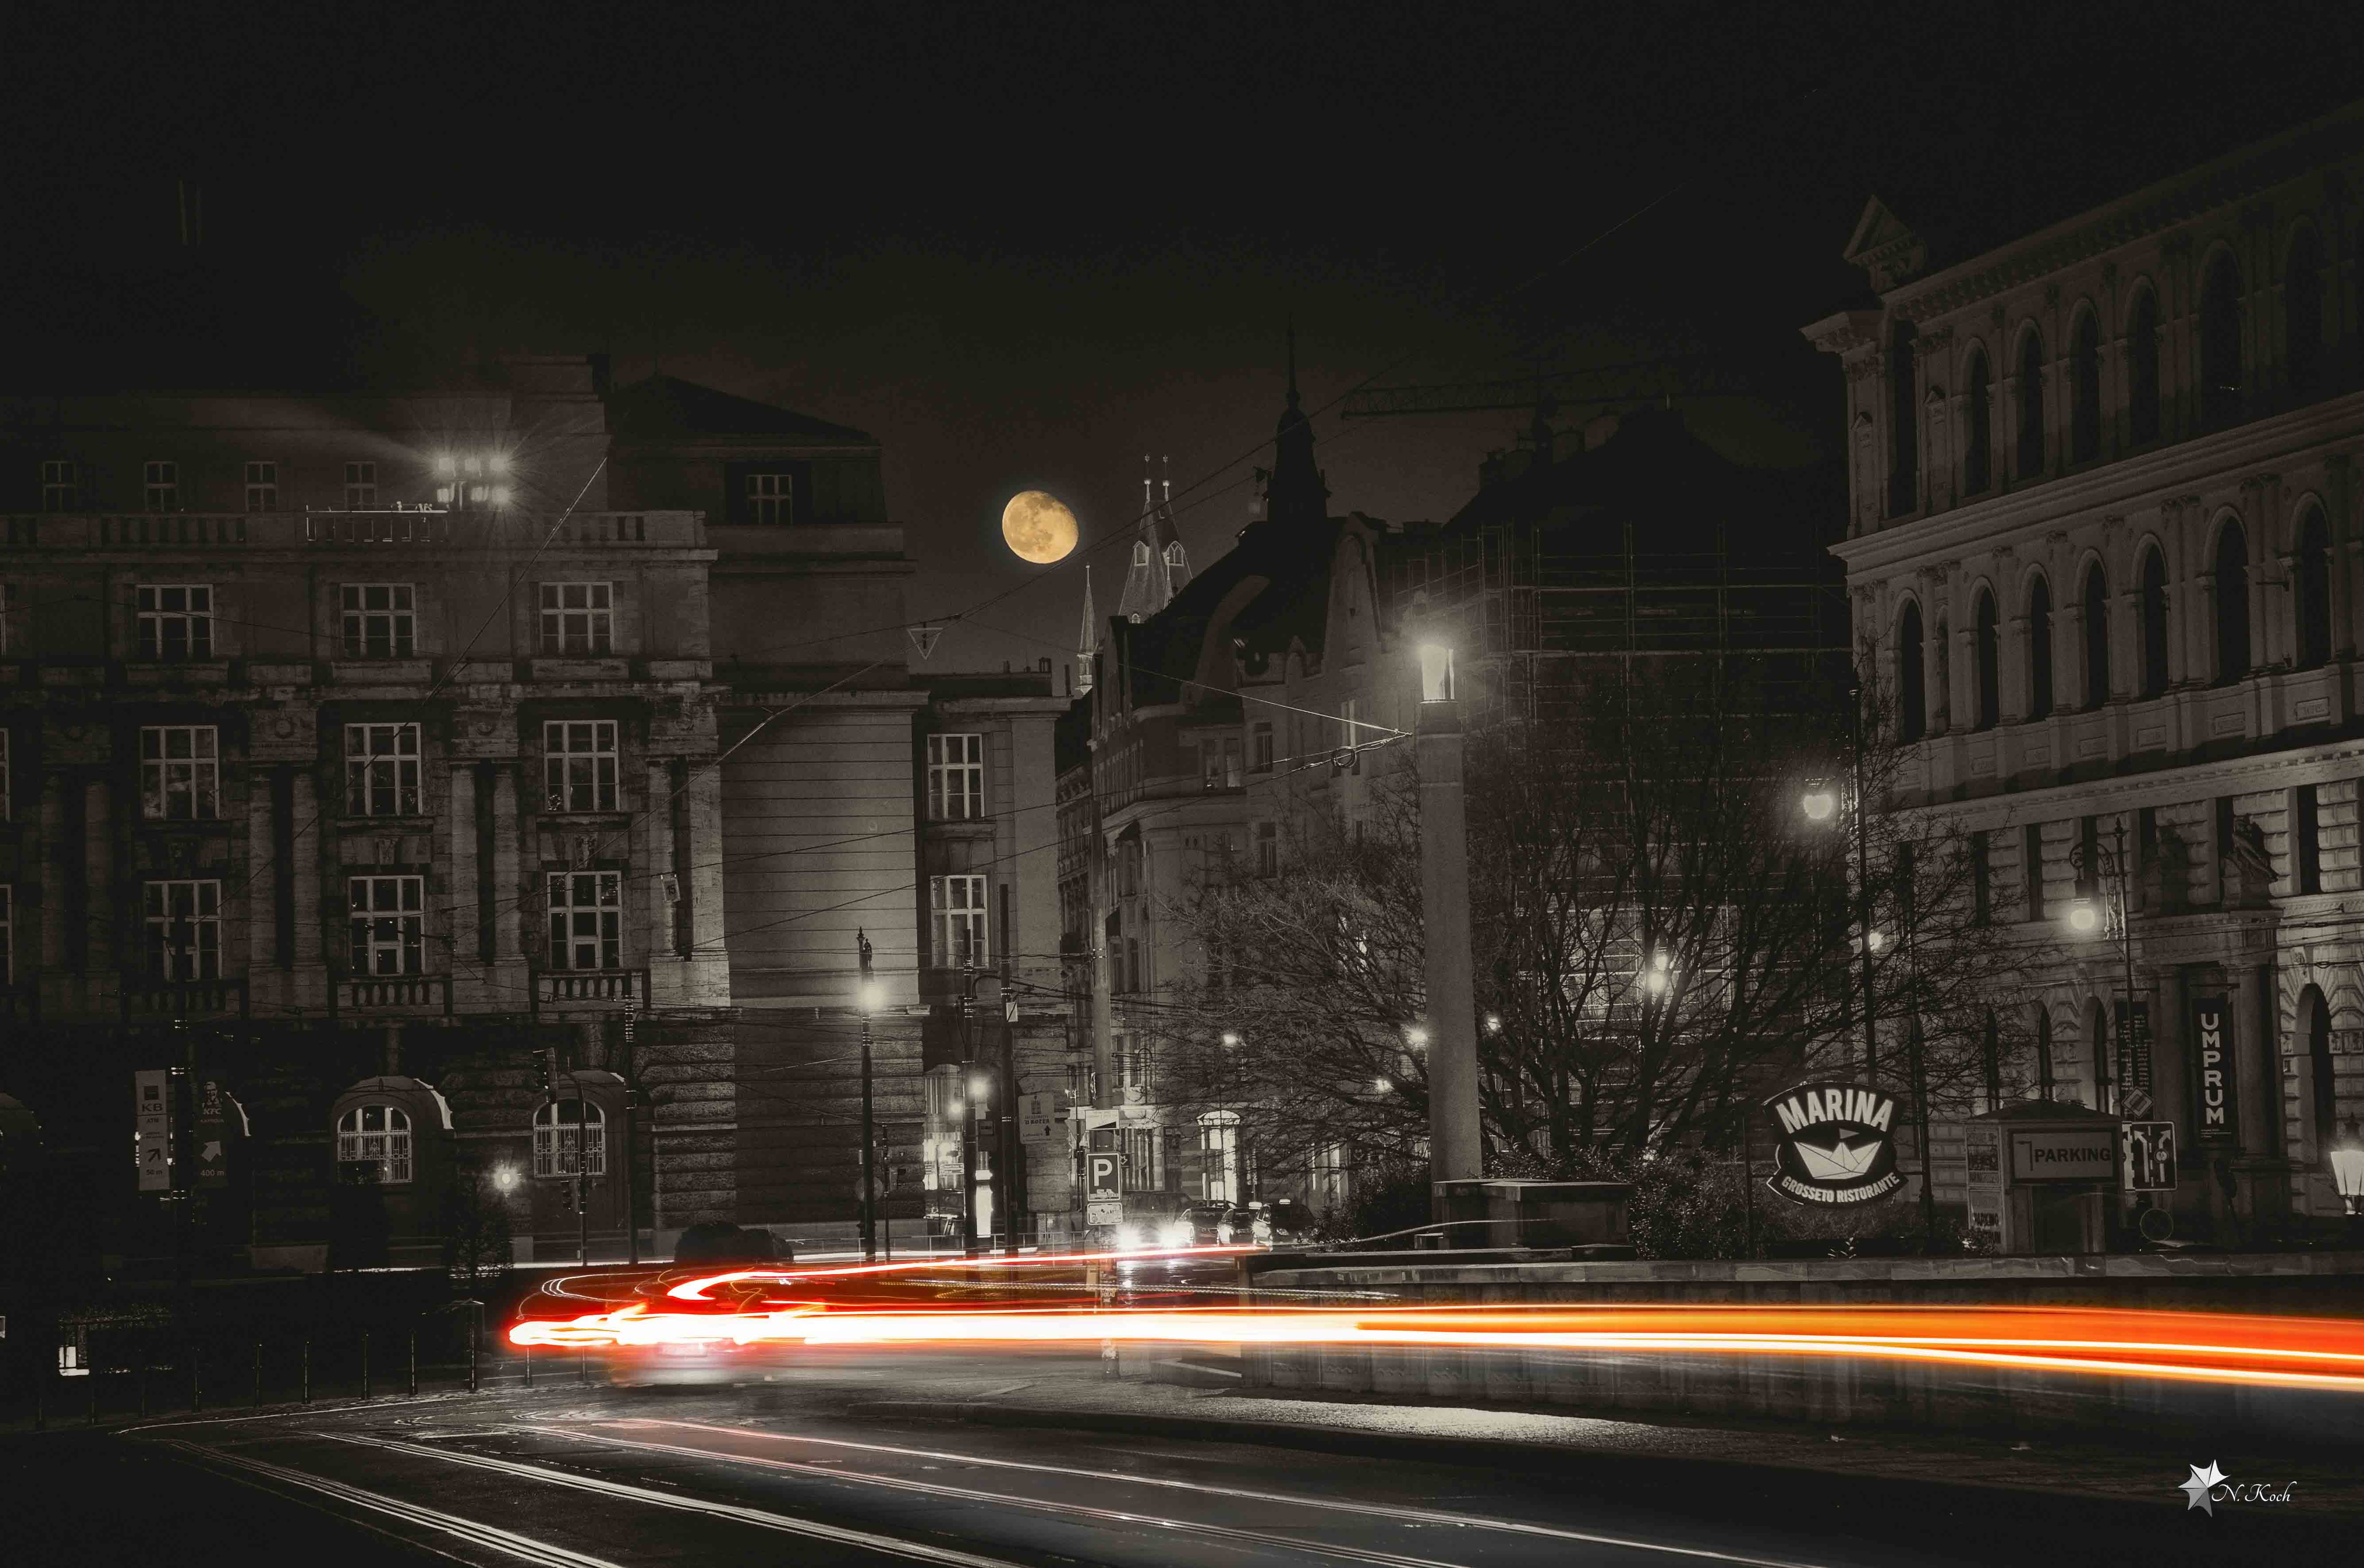 2016, Prague | Moon at night in the city of Prague